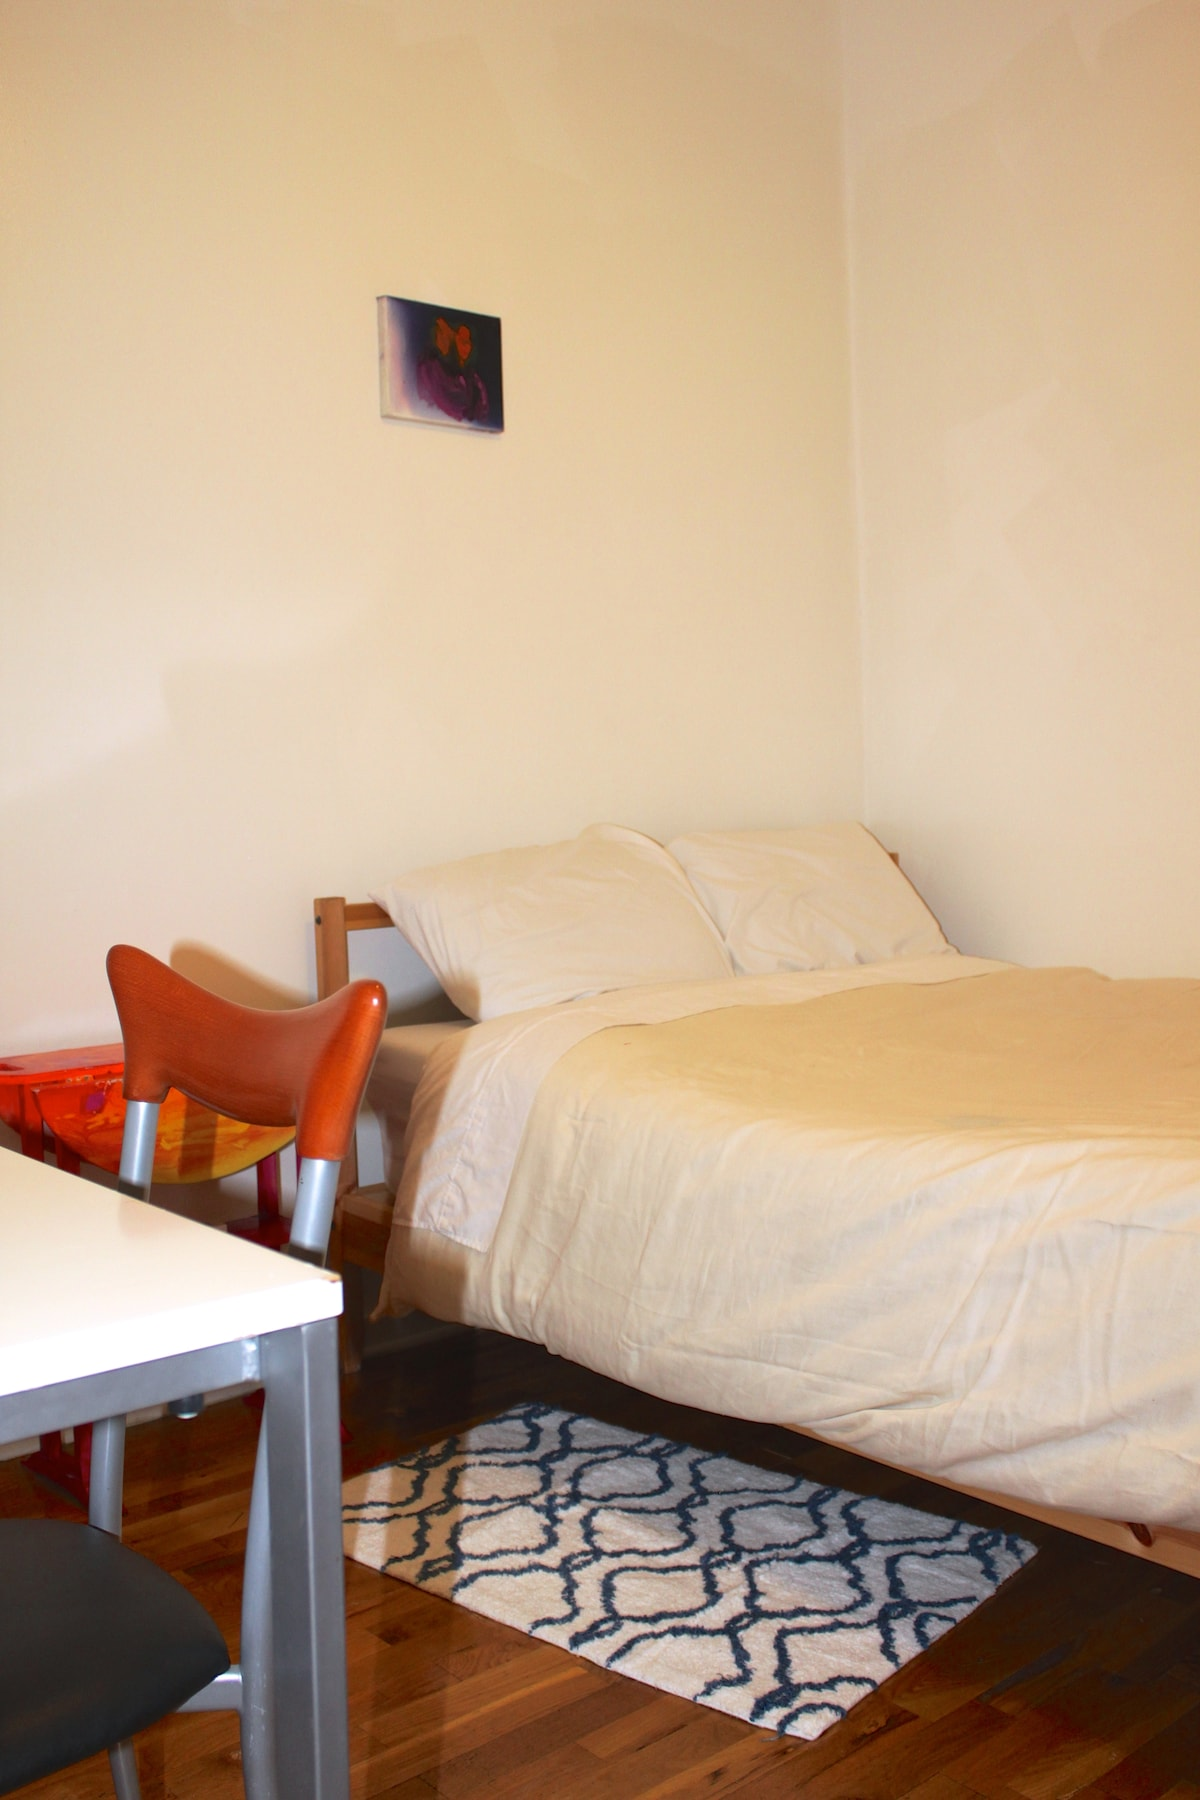 Williamsburg Private Room For Rent